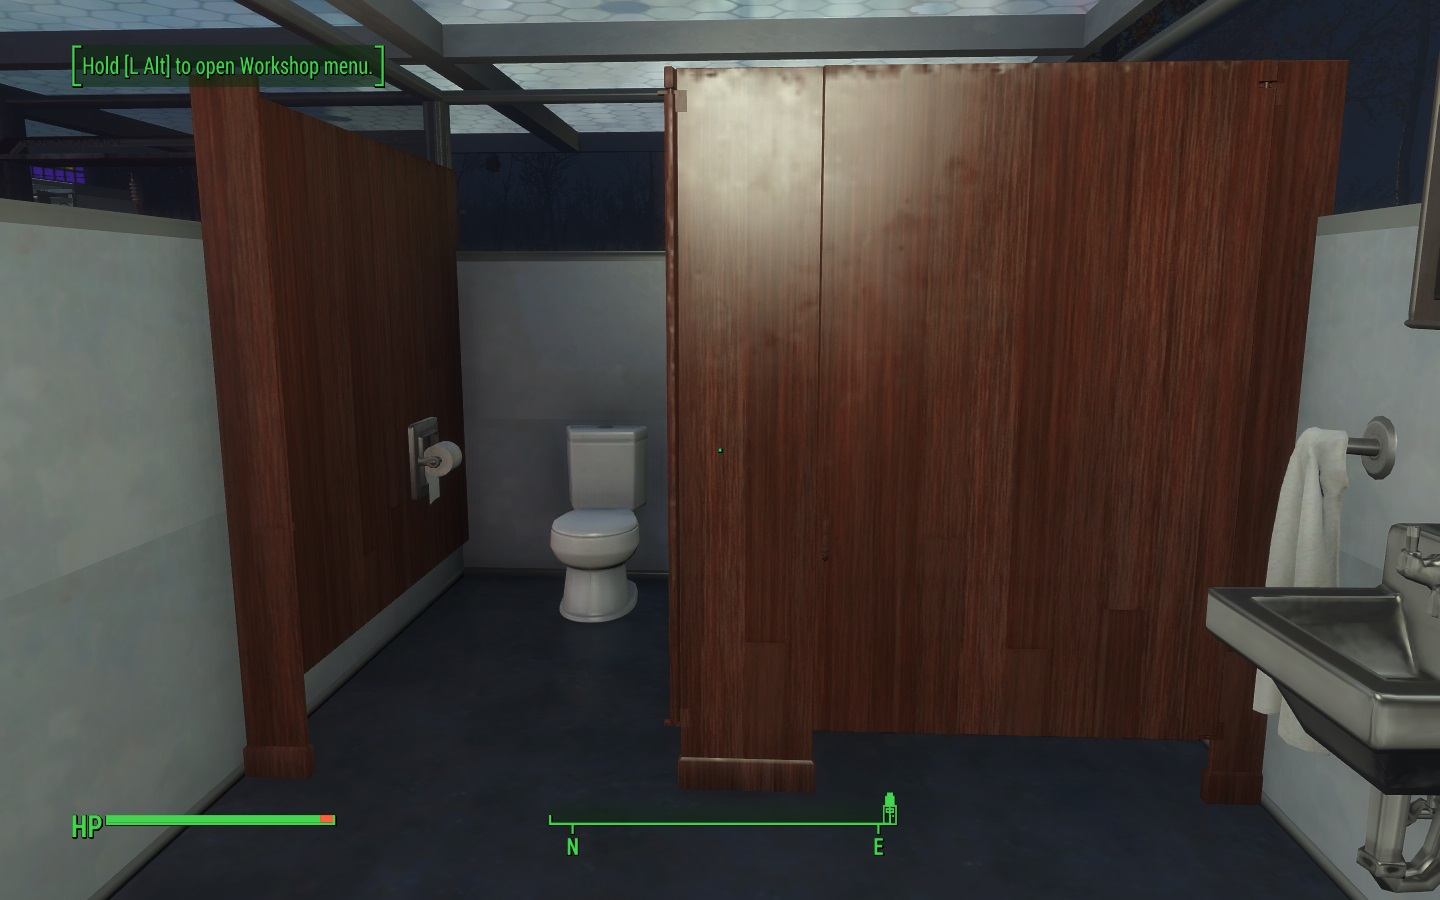 Bathroom Stalls Sims 3 bathroom stall retexture at fallout 4 nexus - mods and community